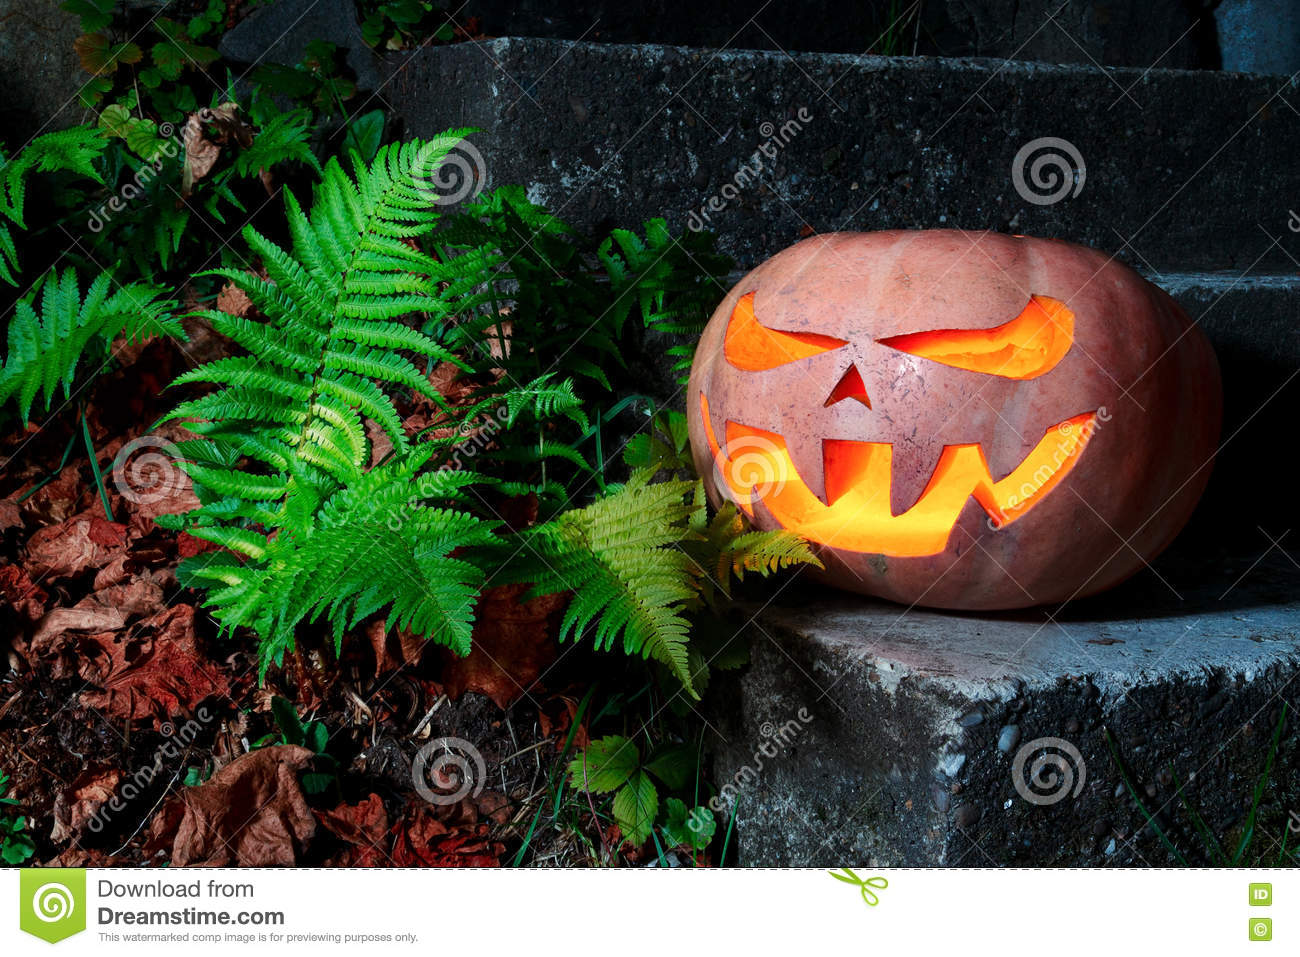 Halloween Scary Pumpkin in the grass with dry leaves and ferns